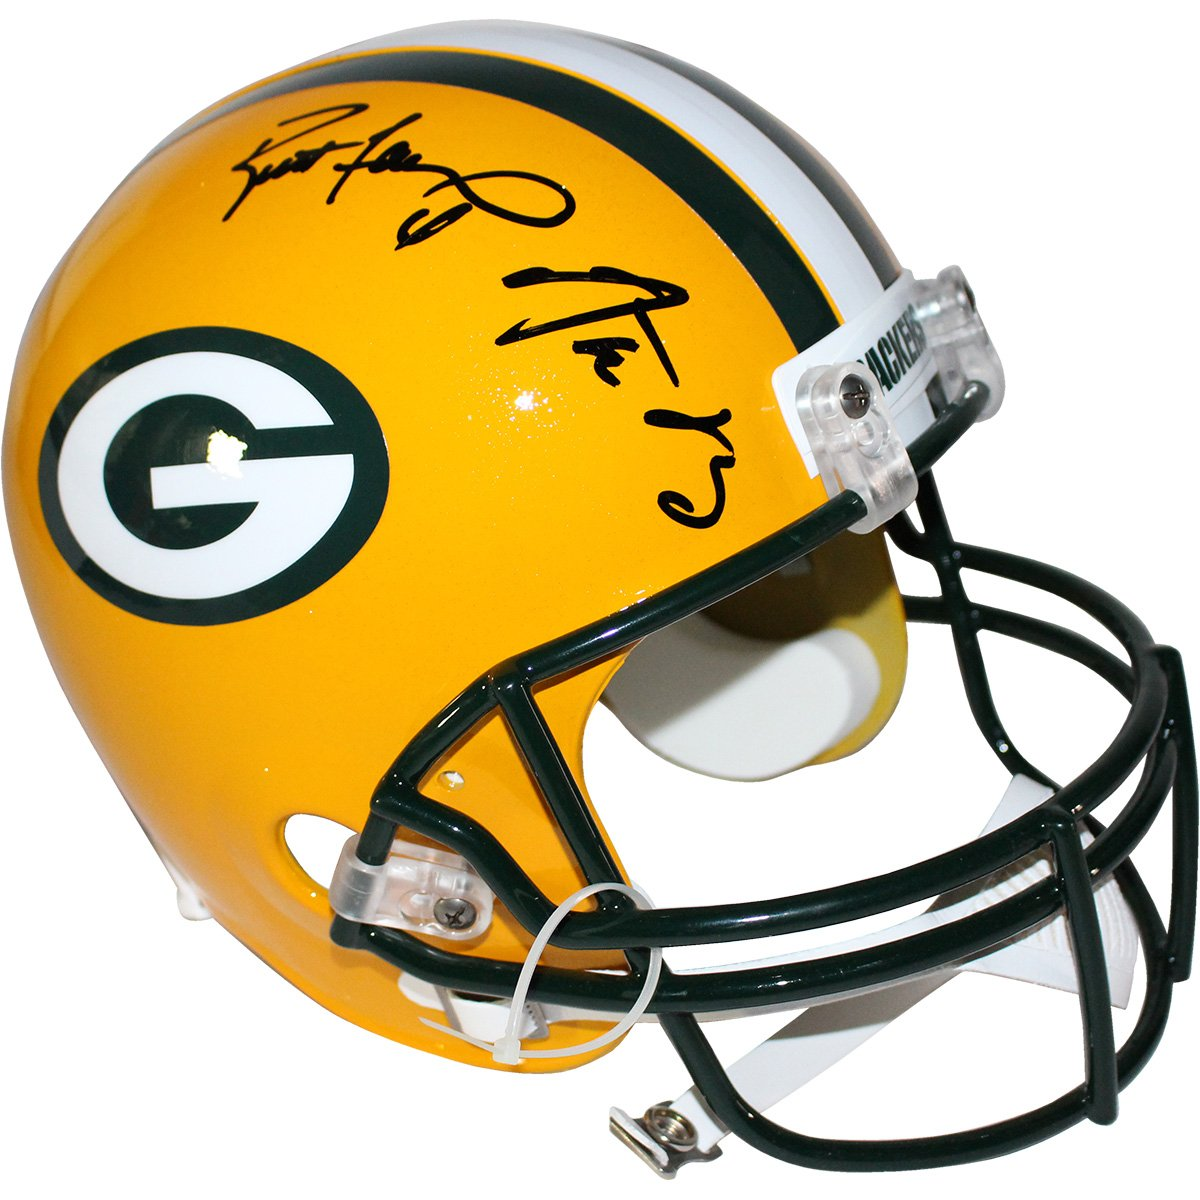 Image of Aaron Rodgers/Brett Favre Dual Signed Packers Authentic Proline Helmet